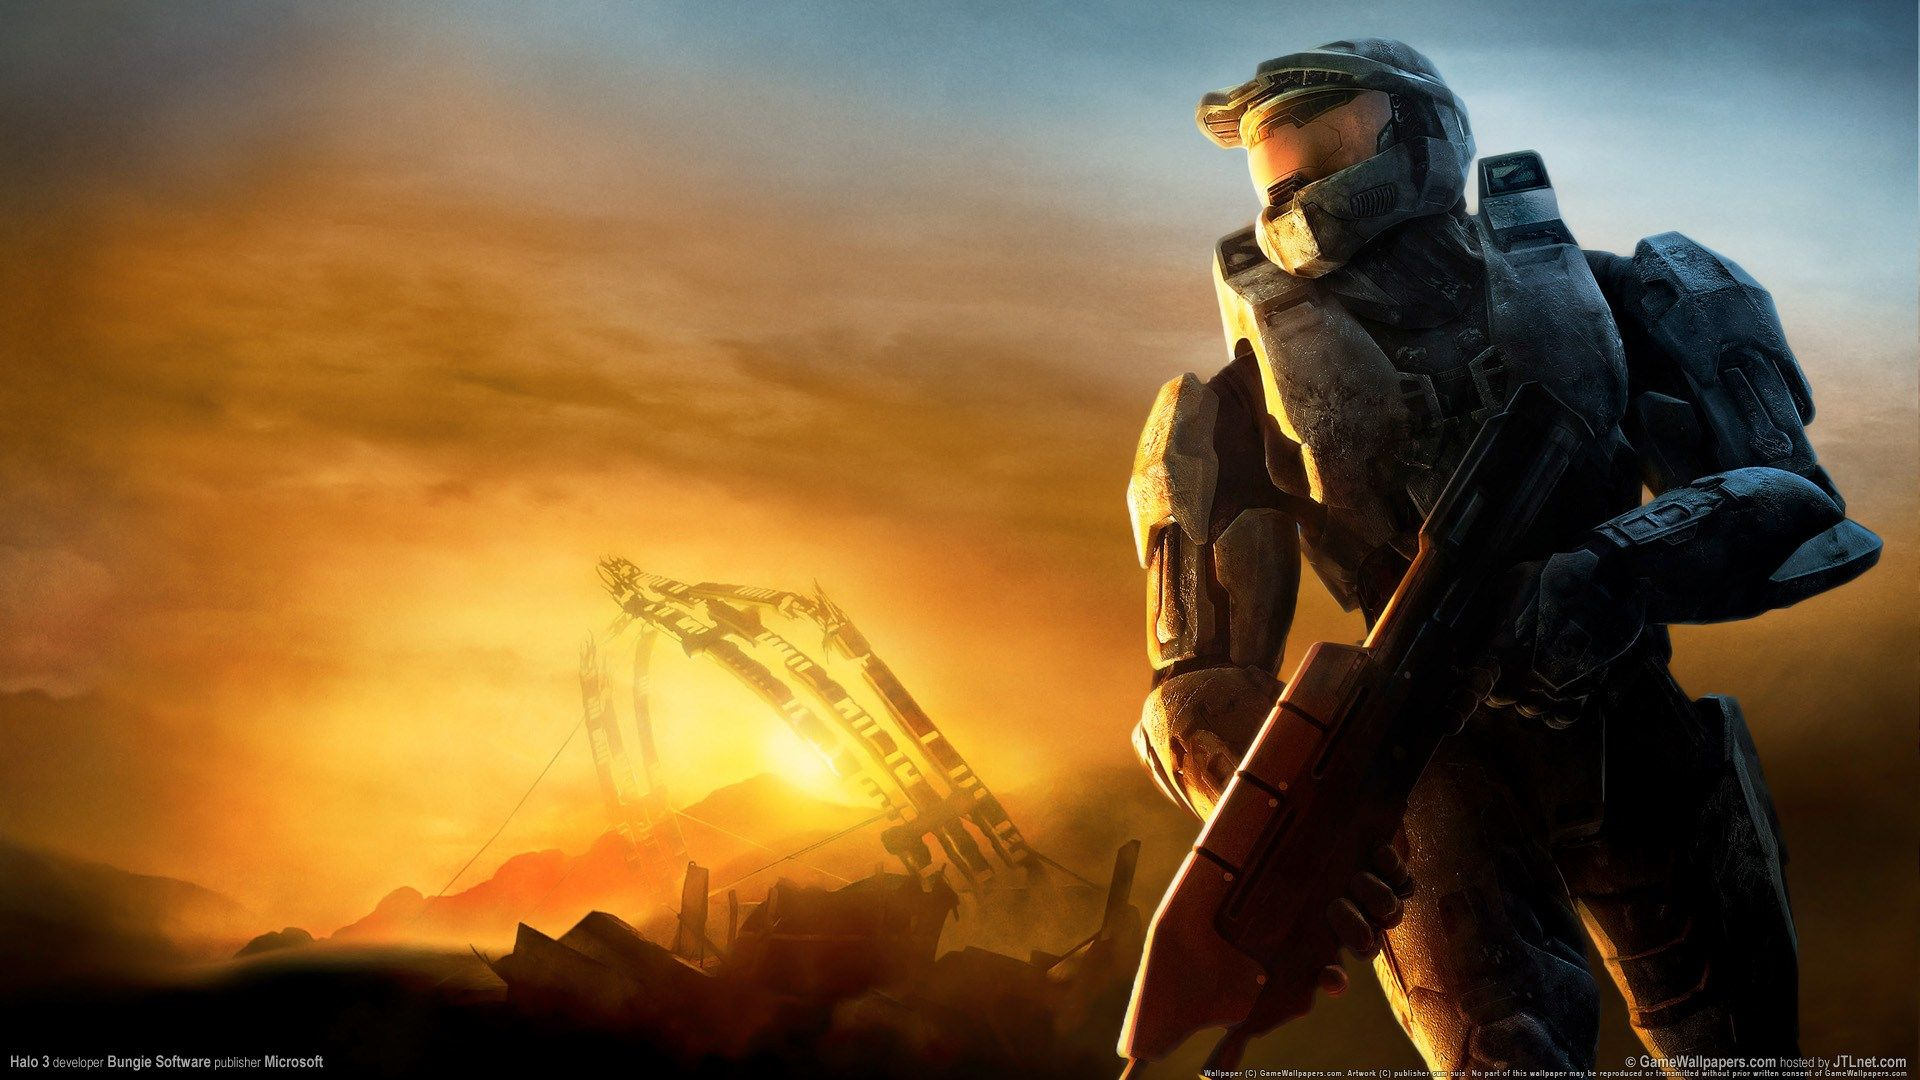 Halo Desktop Nexus Wallpaper 1920x1080 Halo Game Halo Backgrounds Halo 3